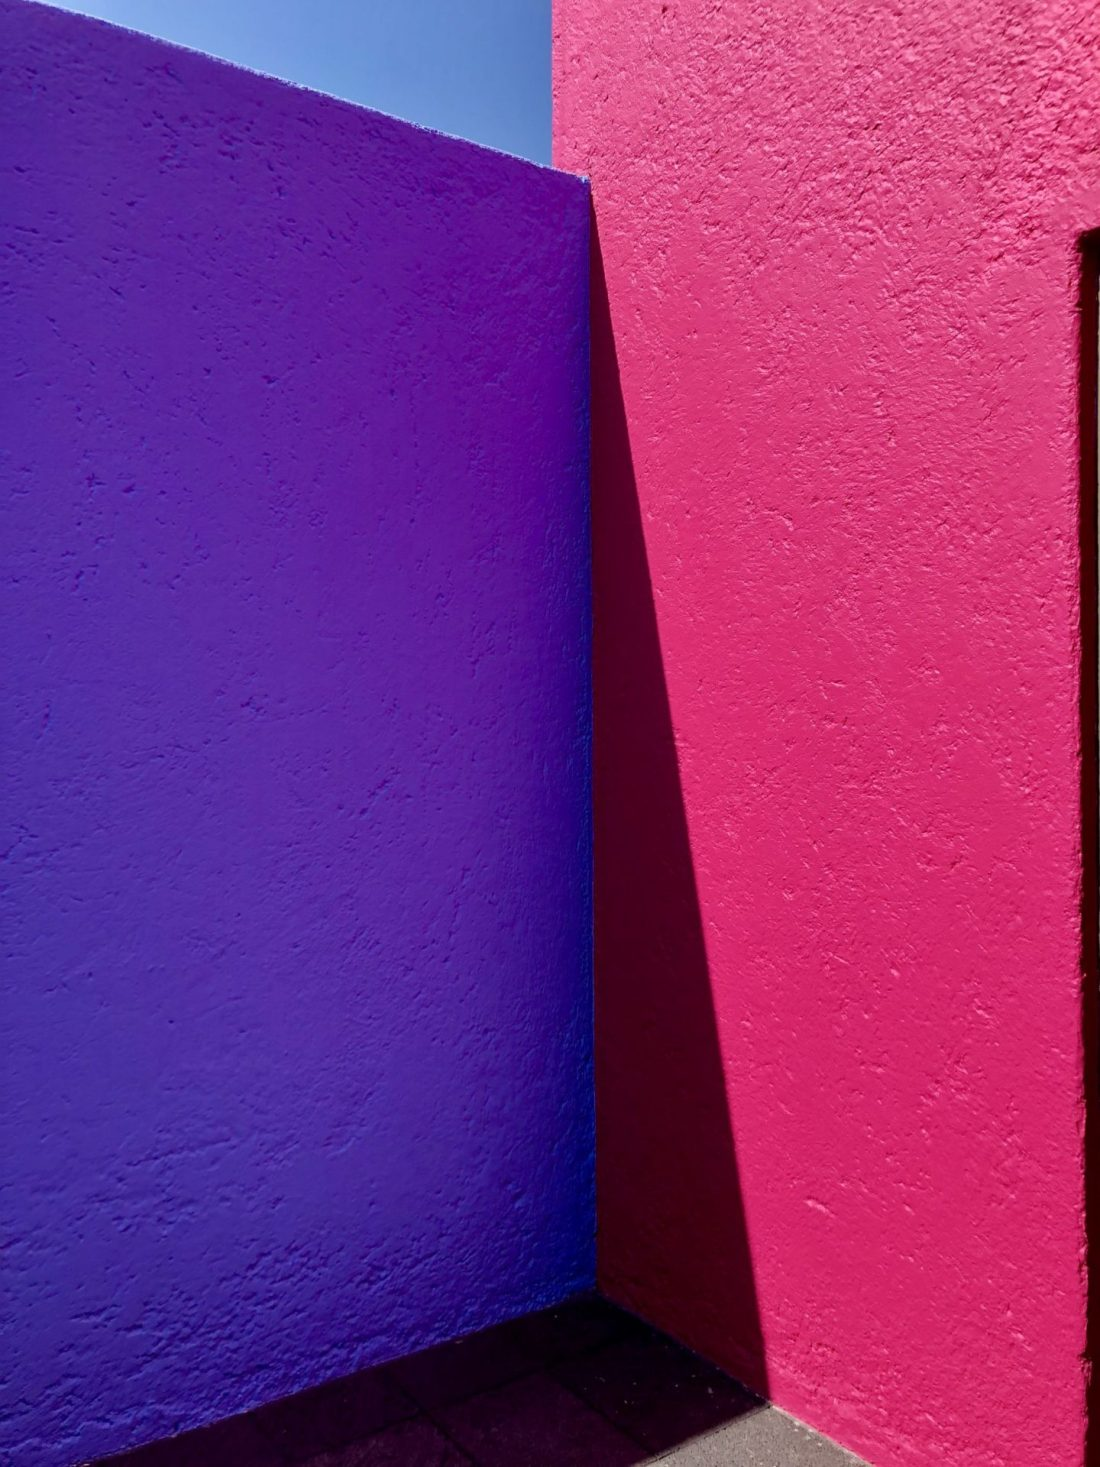 Colourful walls